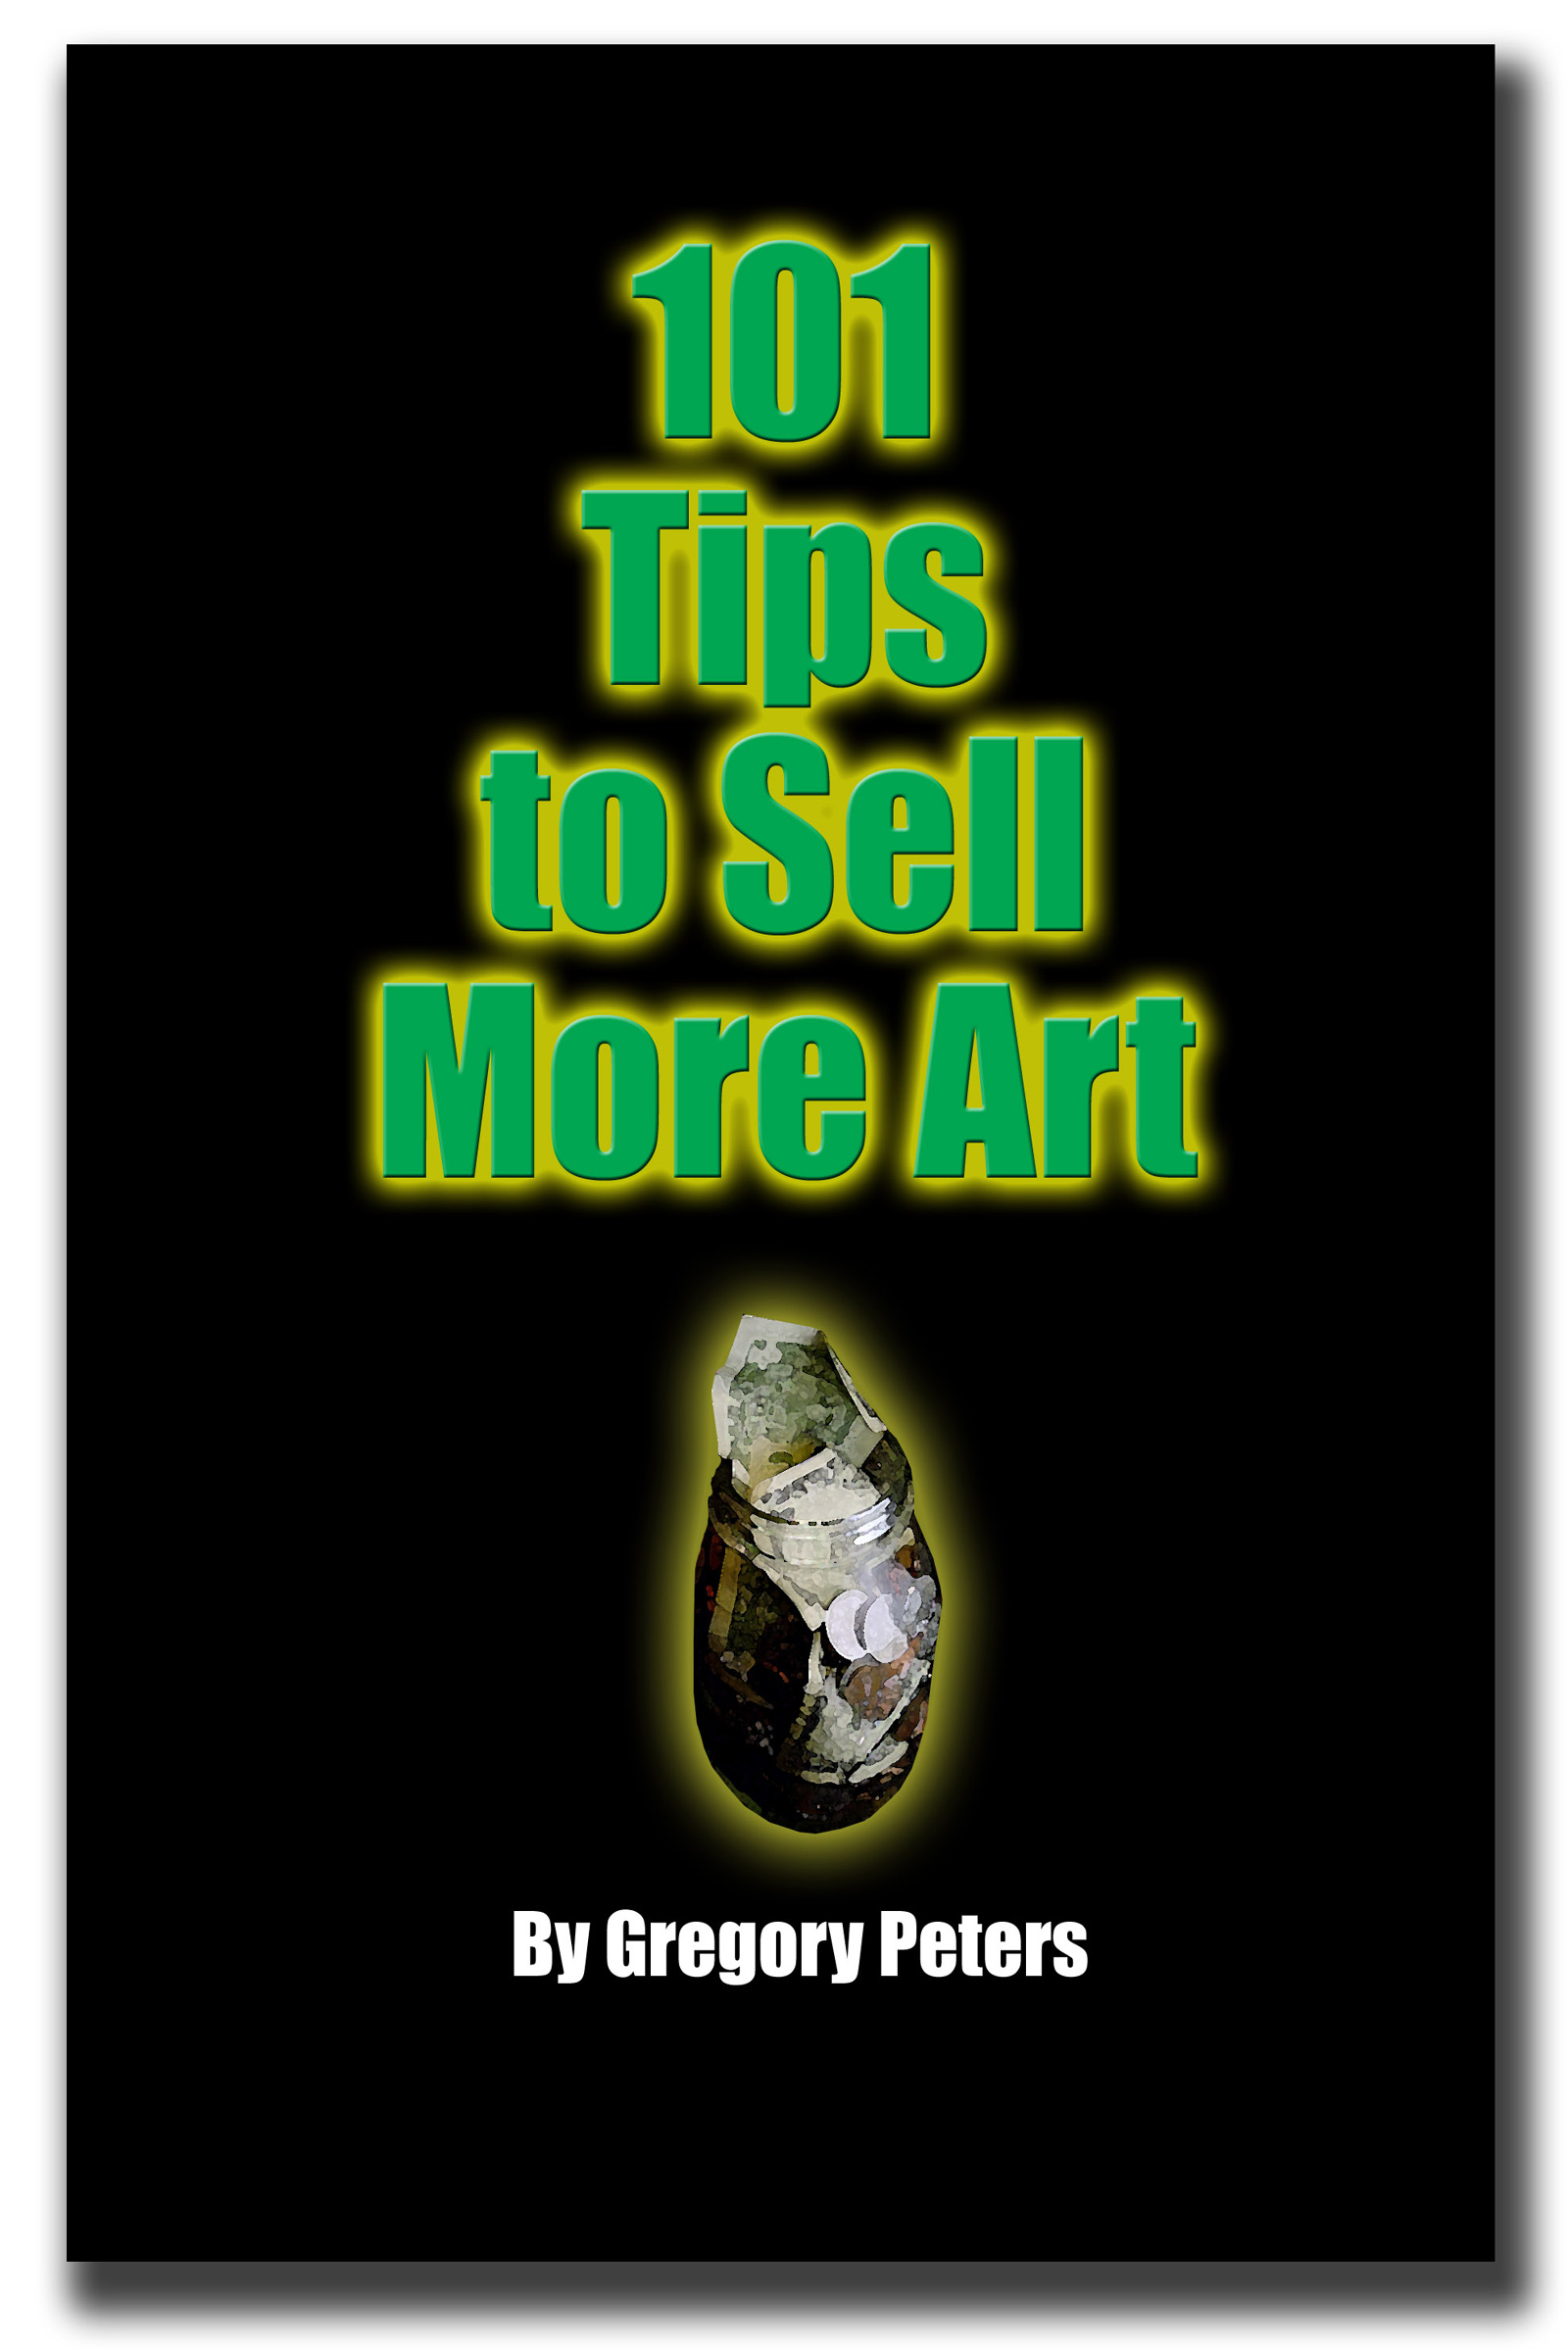 101Tips to Sell More Art